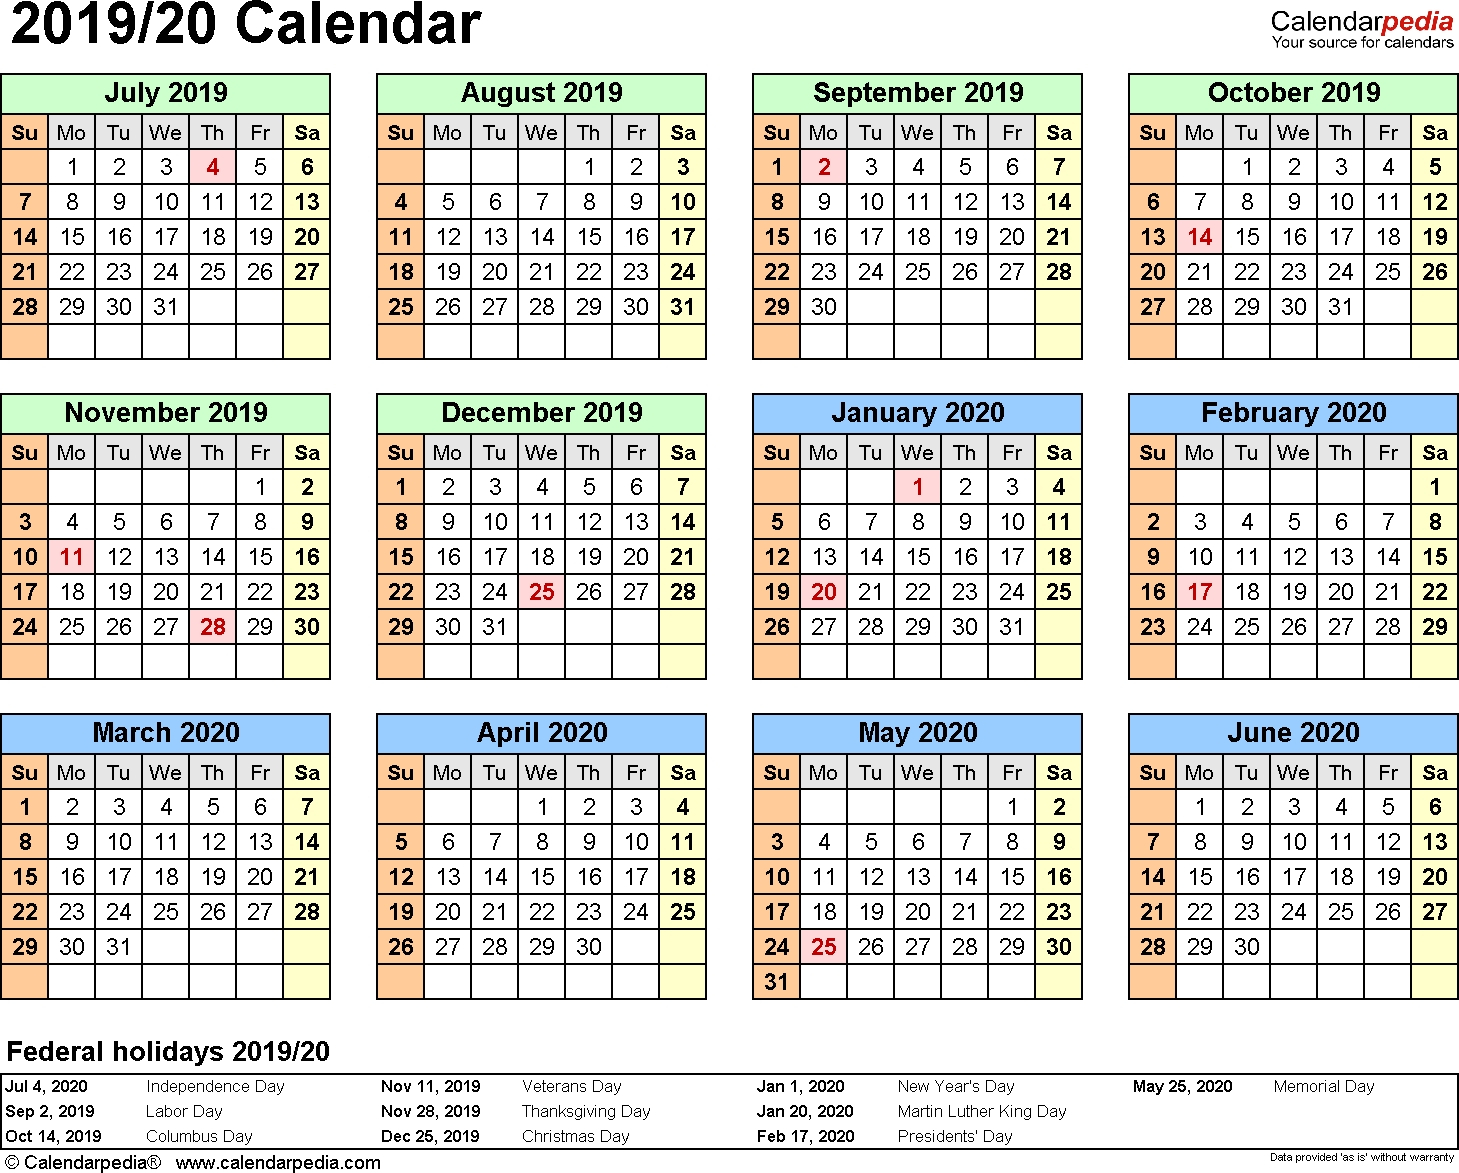 Printable Calendar July 2019 To June 2020 - Calendar Inspiration Design in Printable Calendar 2019-2020 Year At A Glance